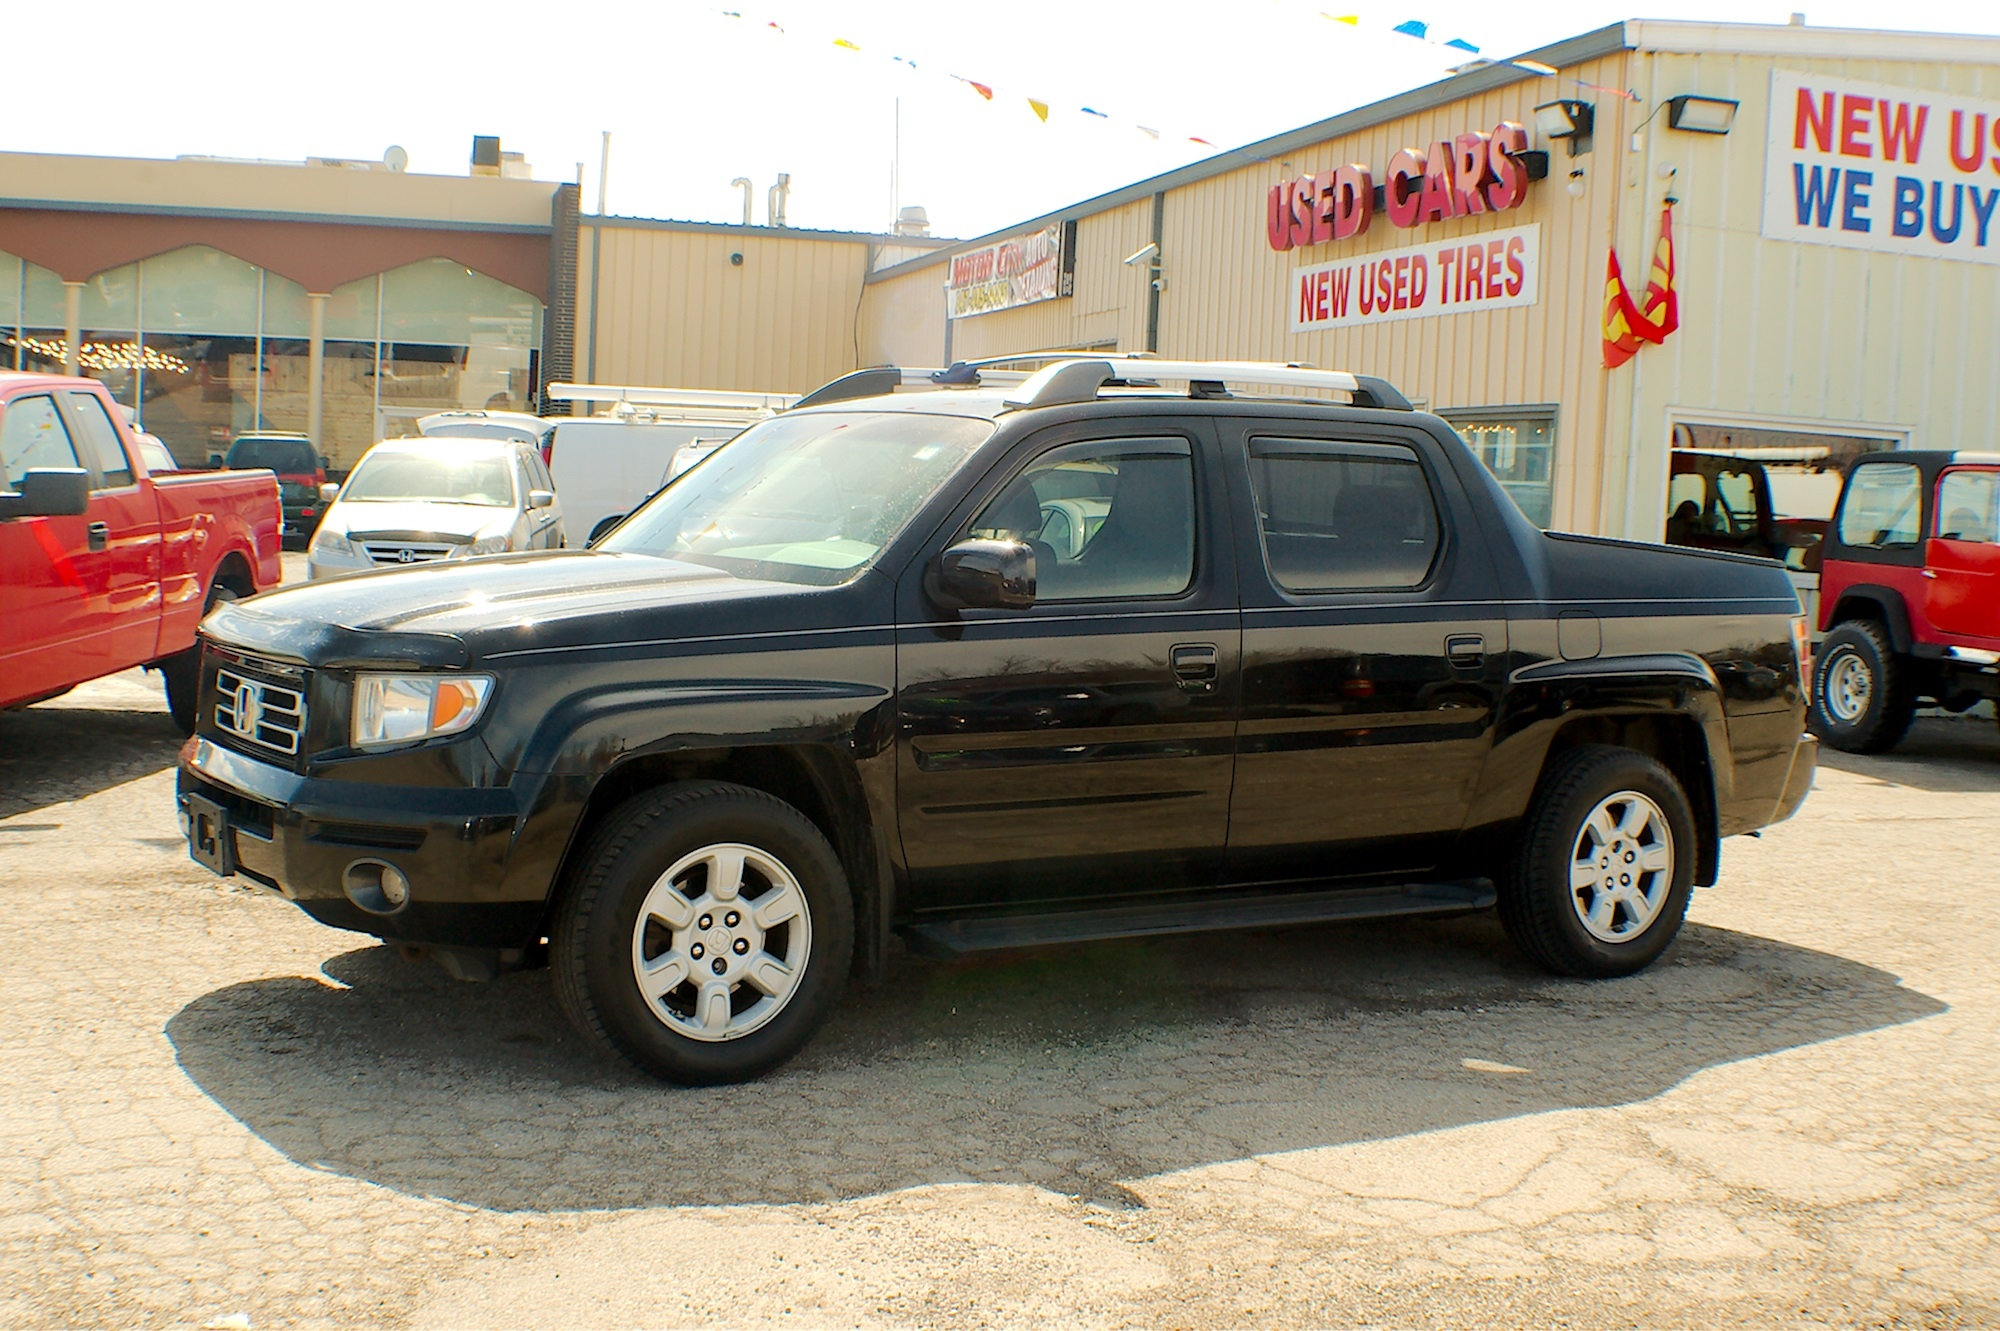 2006 Honda Ridgeline Black 4WD Crew Cab Truck Sale Antioch Zion Waukegan Lake County Illinois